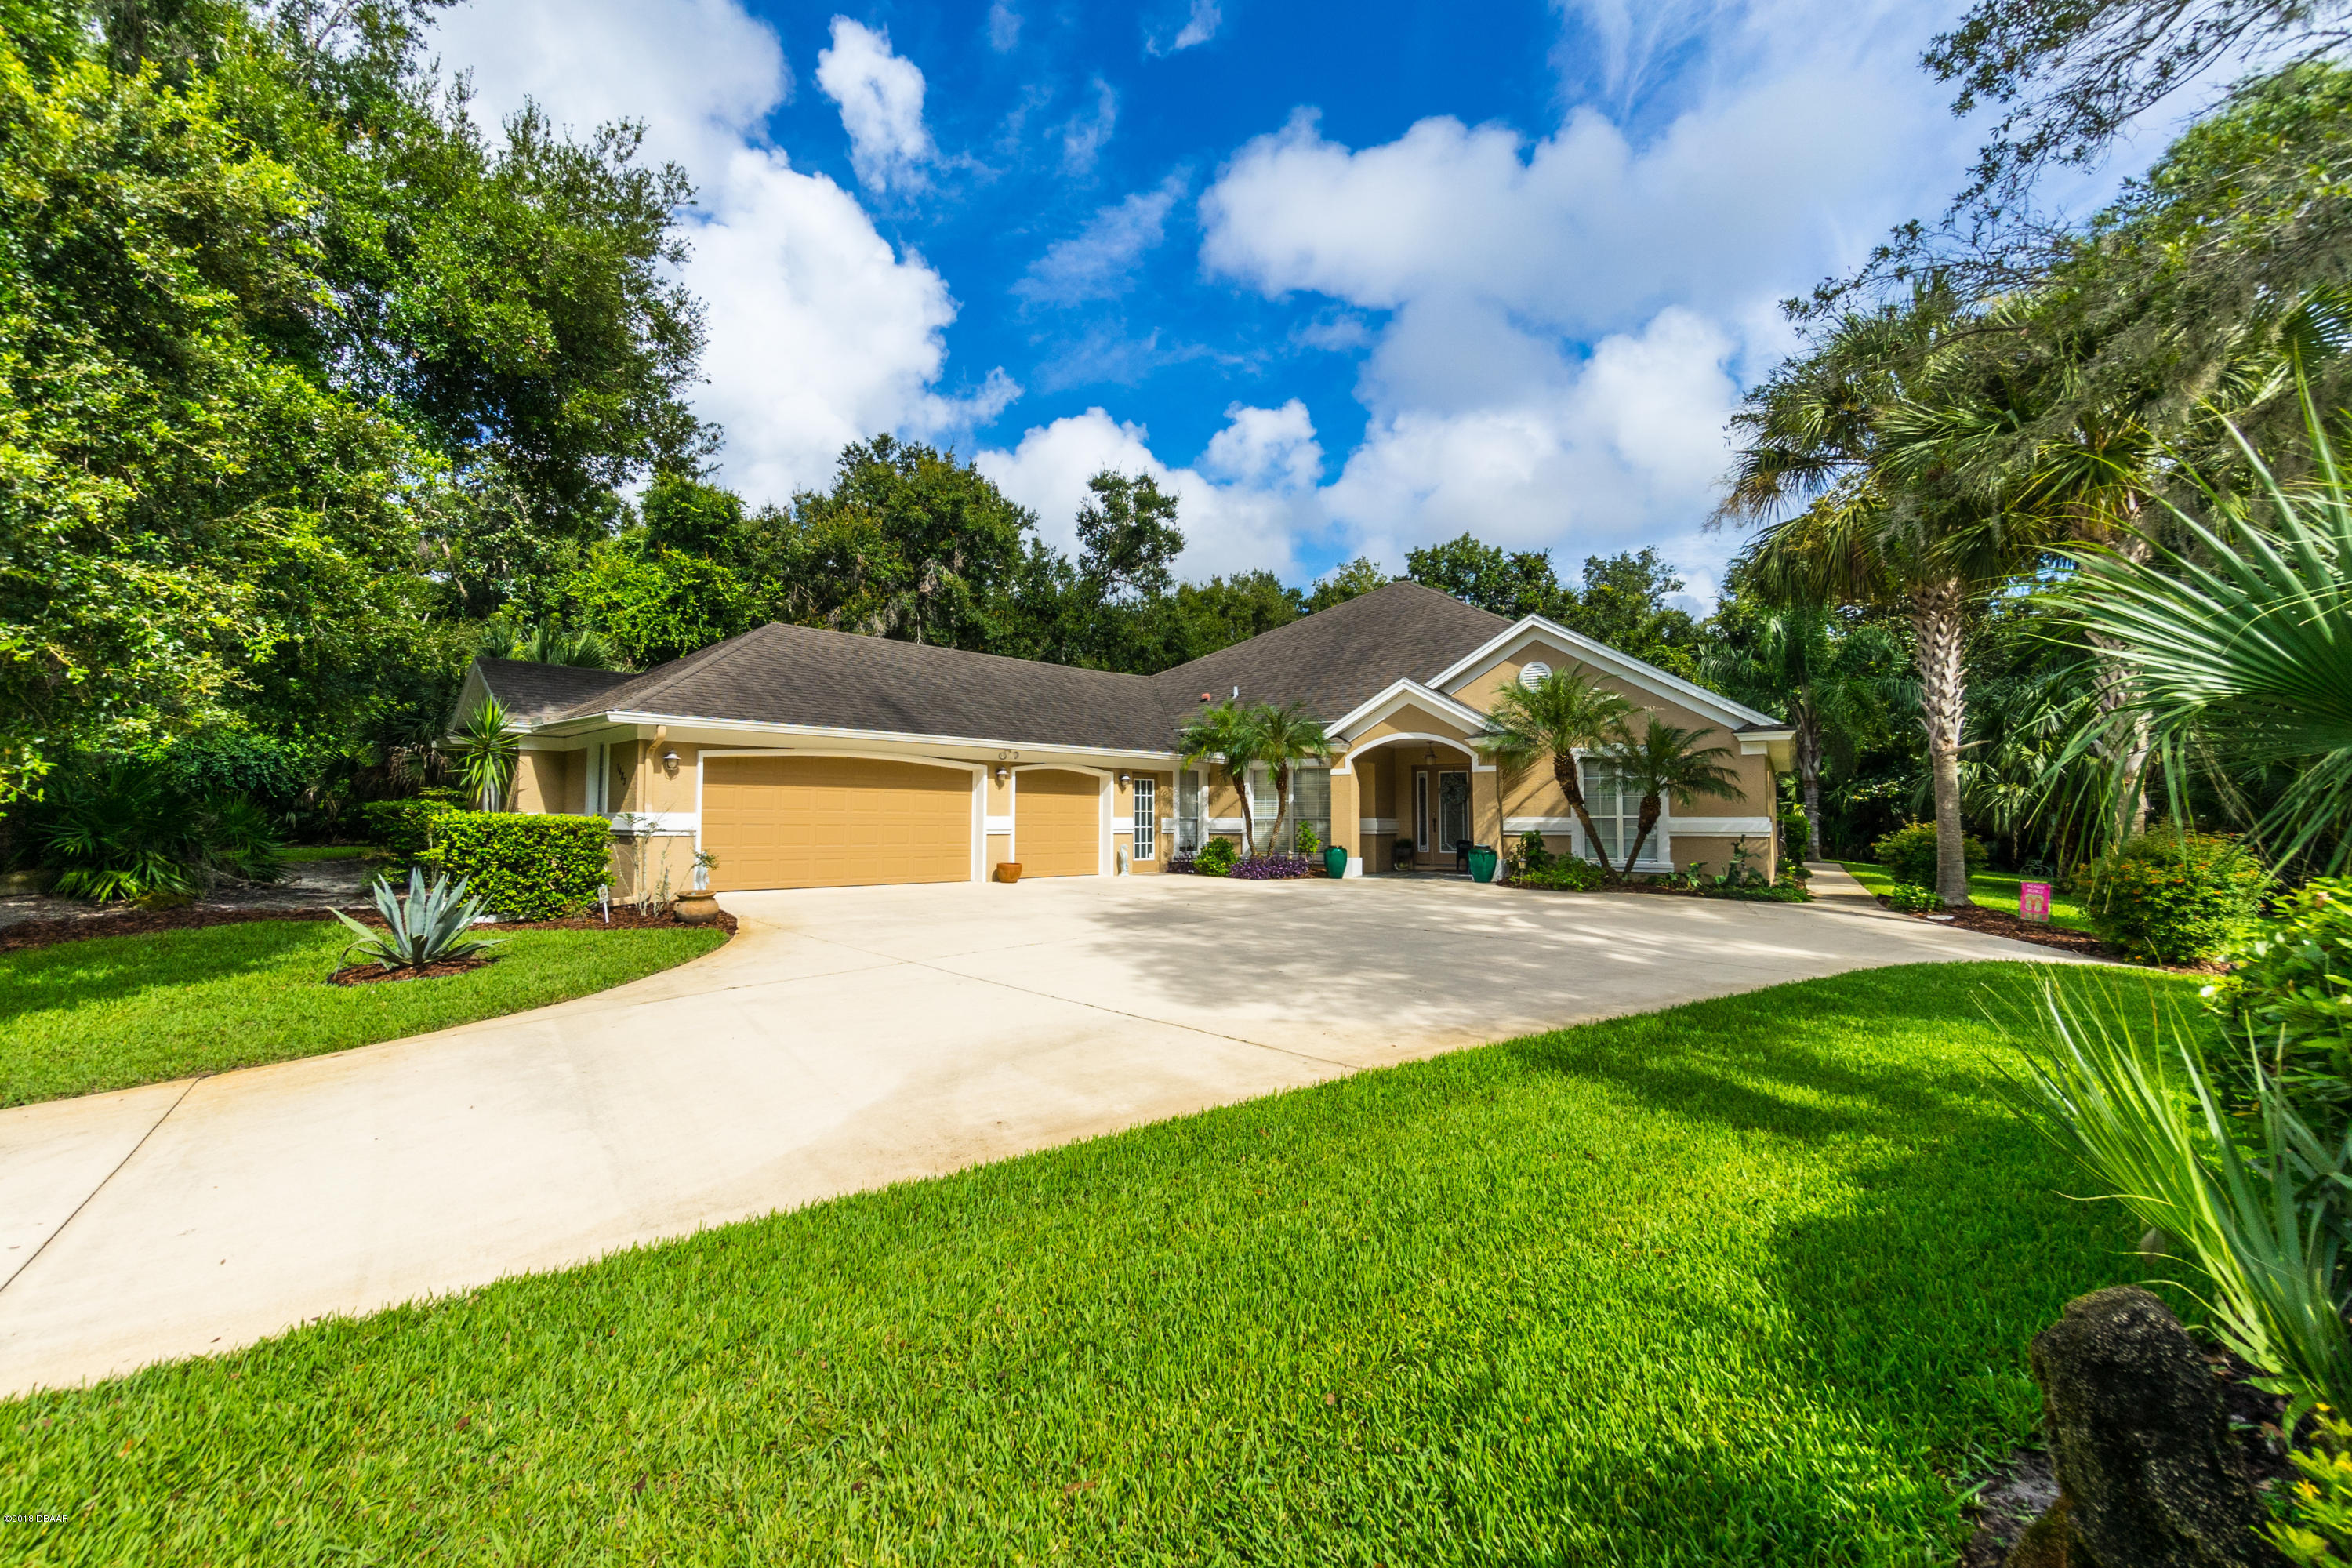 Photo of 1483 Pecos Drive, Ormond Beach, FL 32174